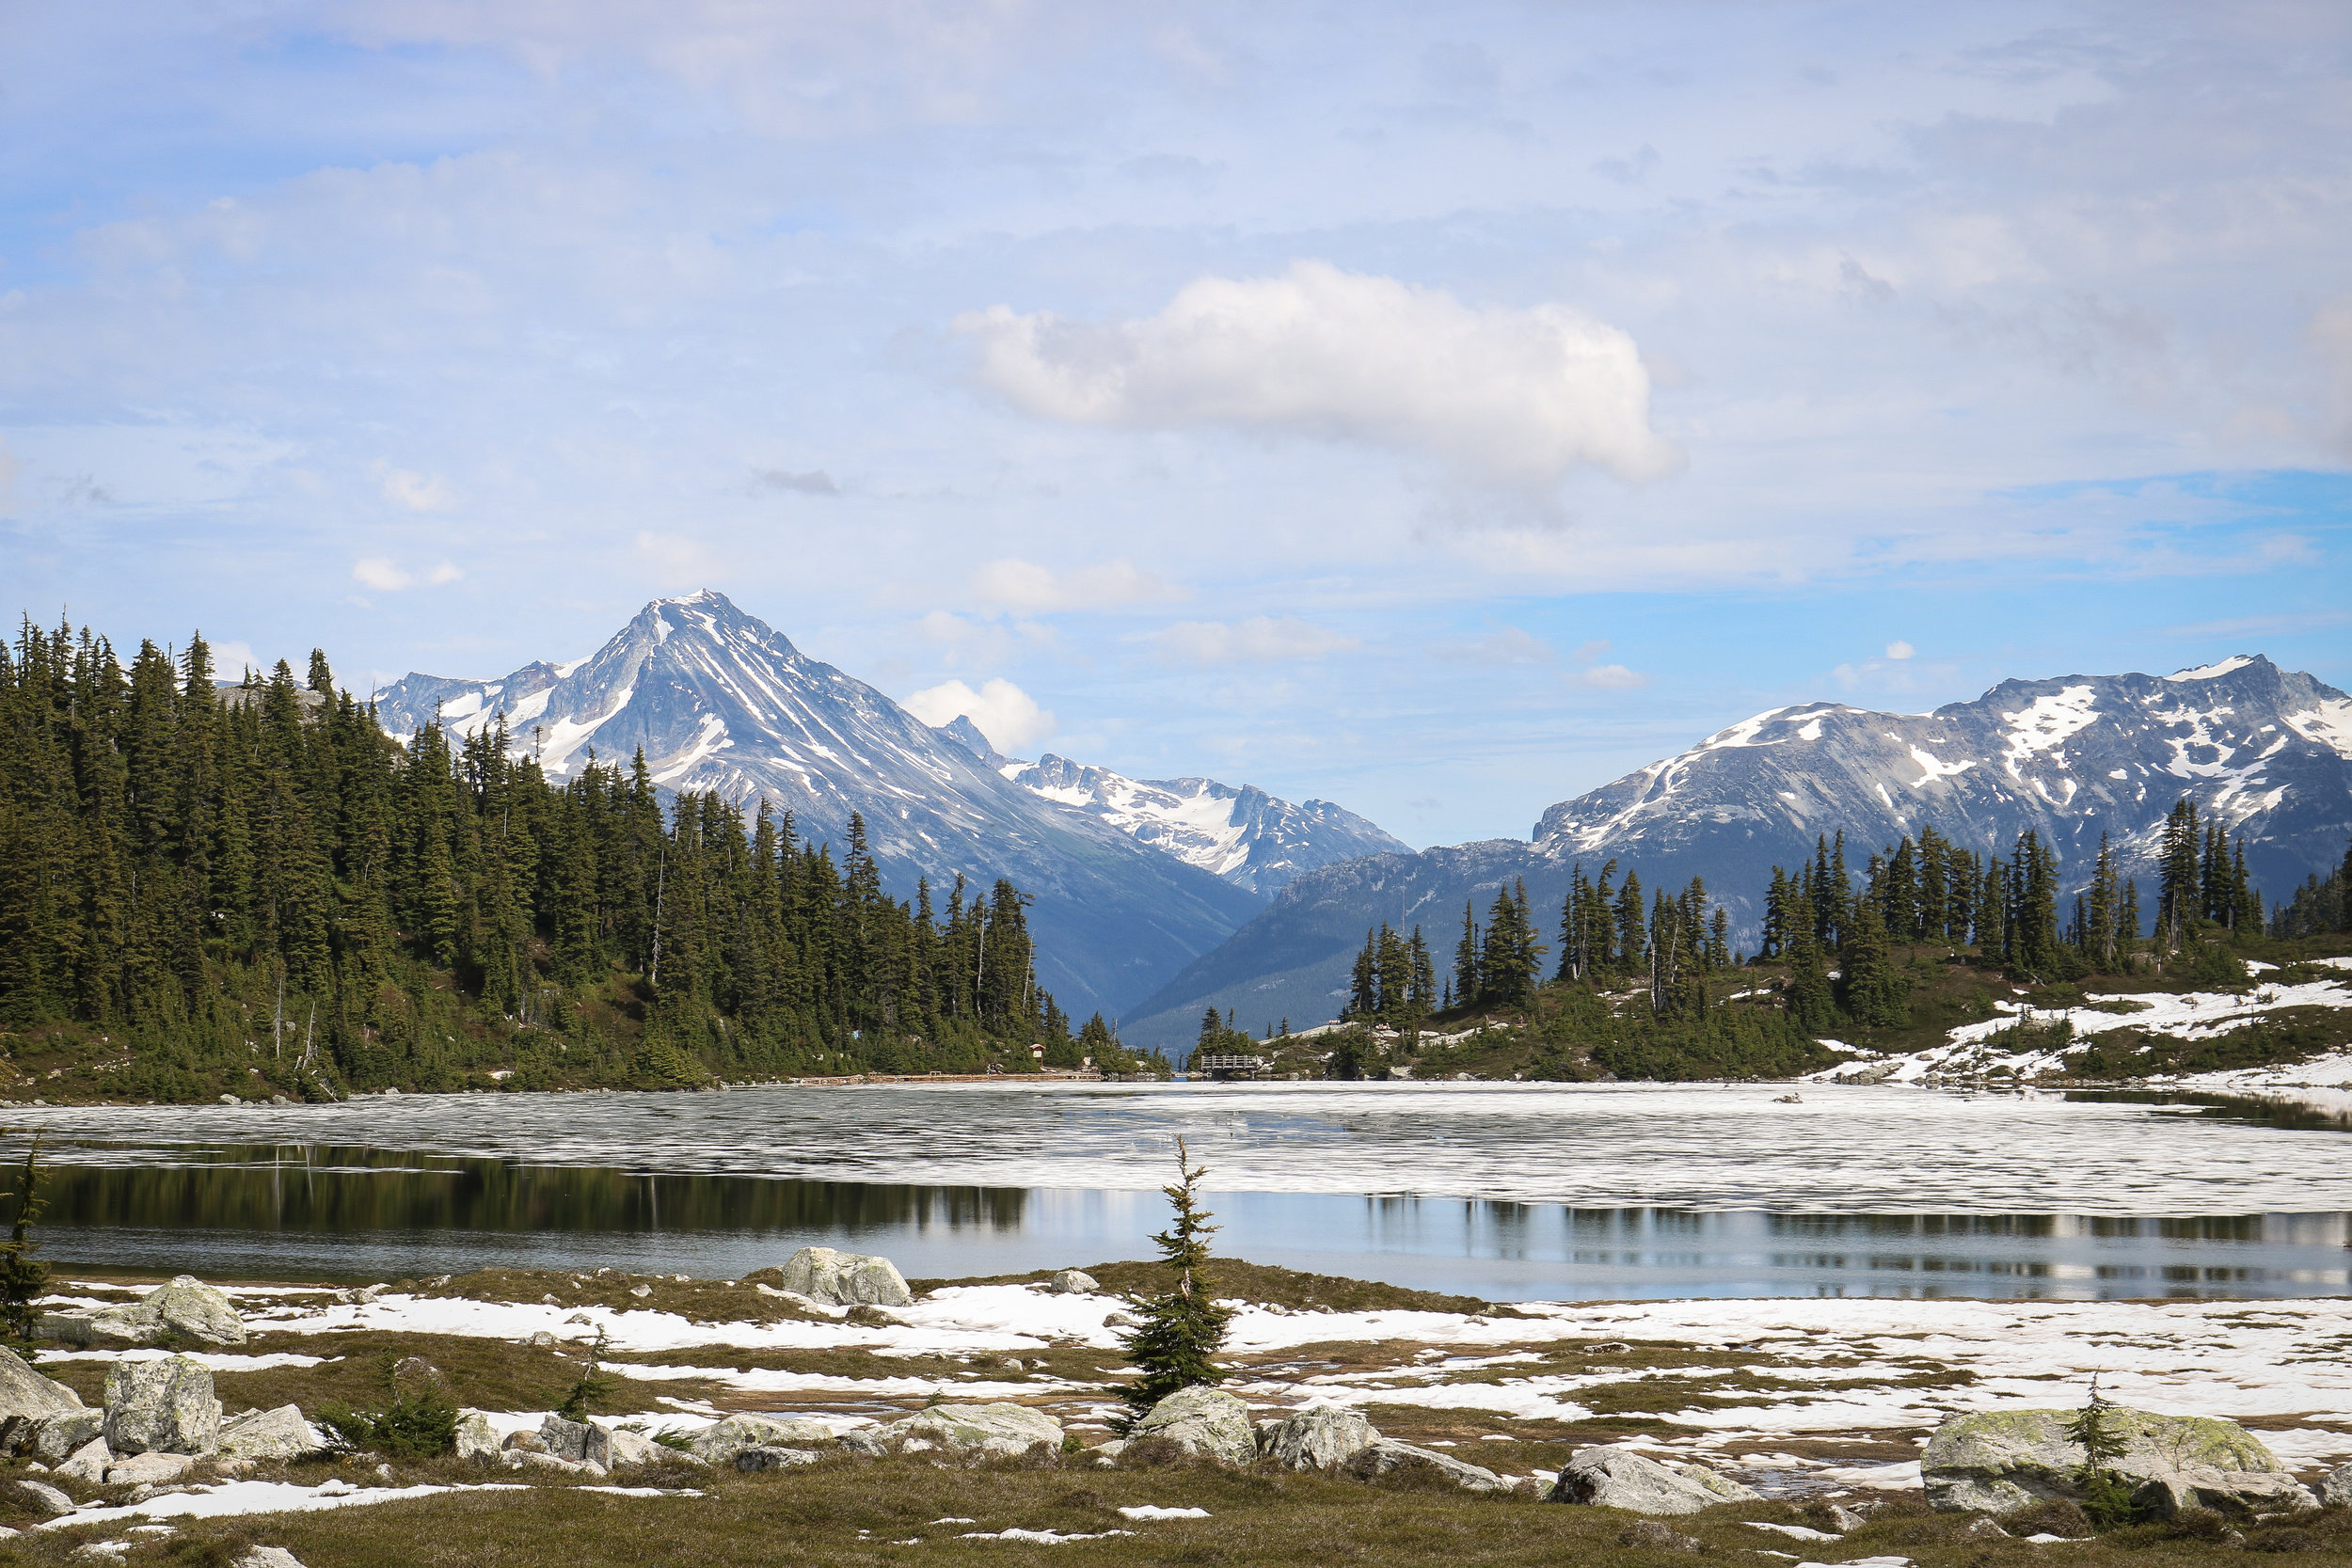 Taking in Wedge Mountain (left) and Blackcomb (right) from the far side of Rainbow Lake